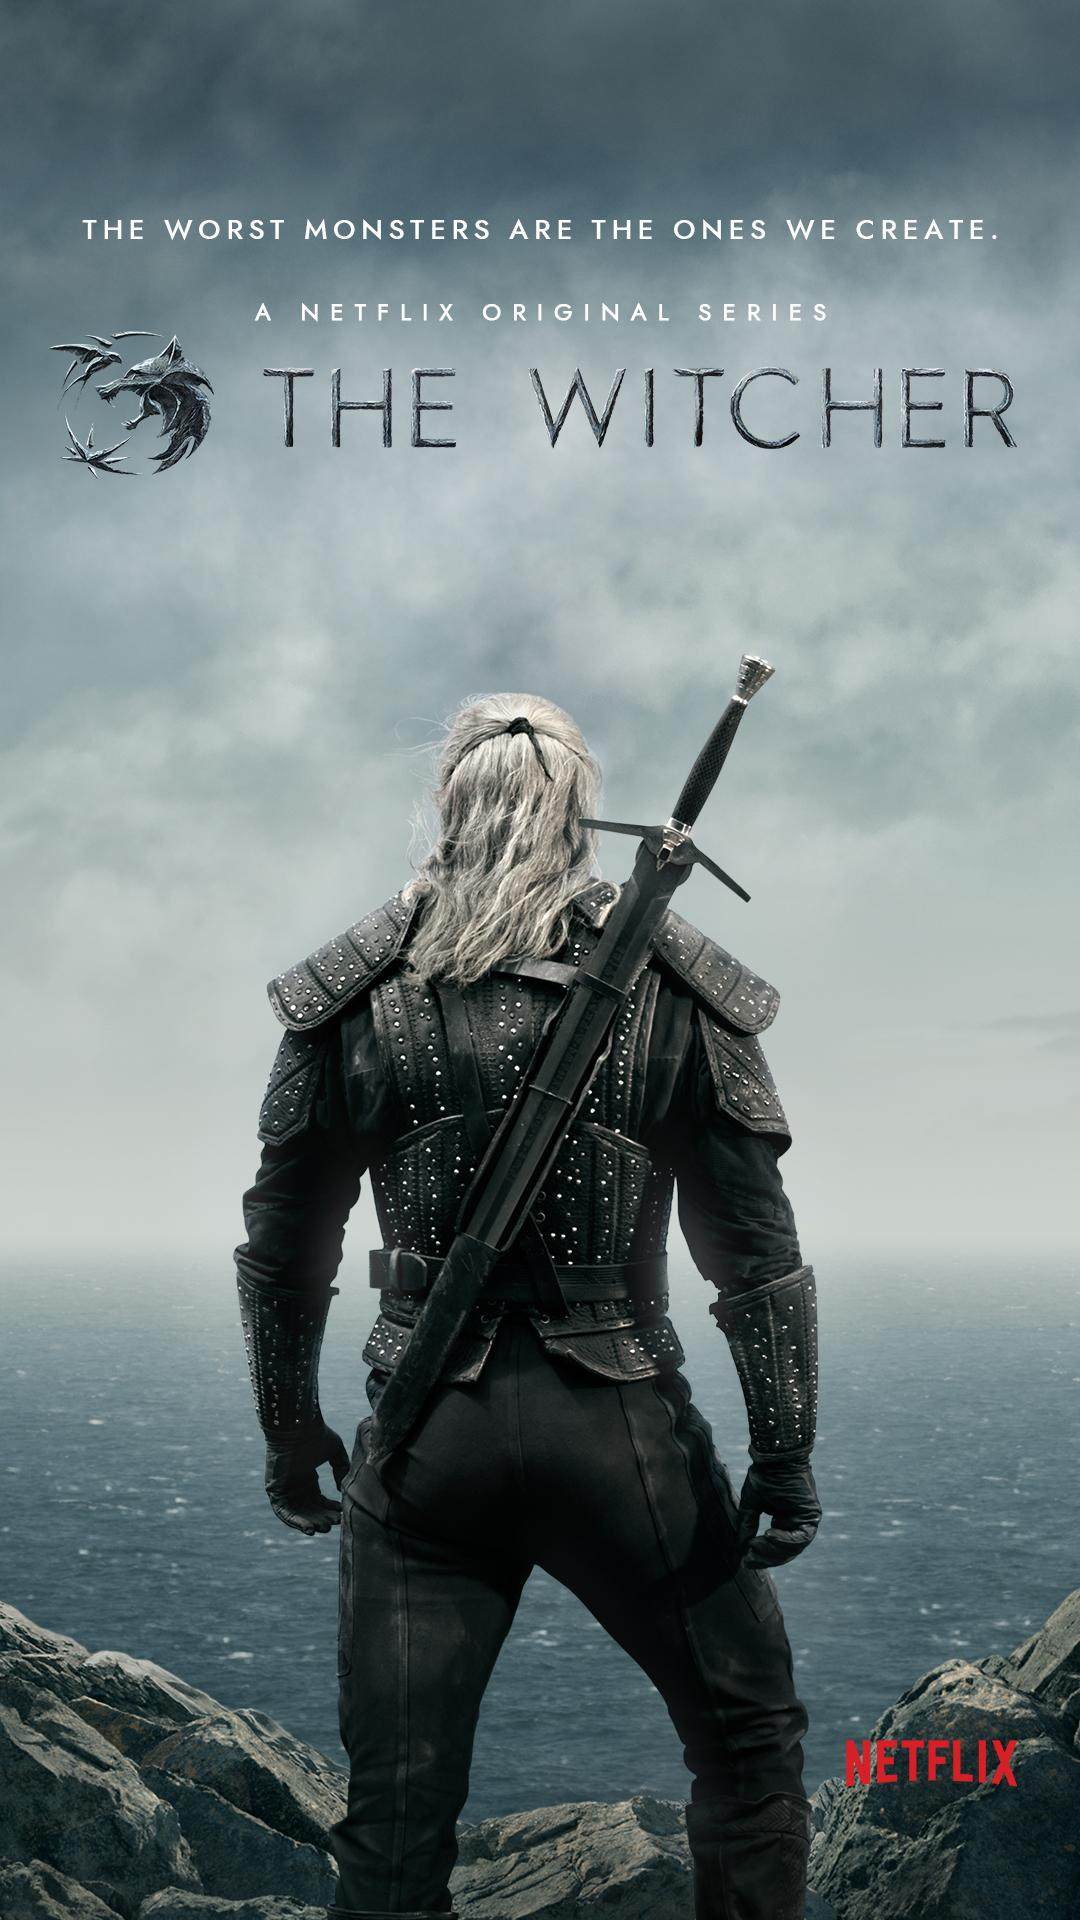 The Witcher - Season 1 Poster - Henry Cavill as Geralt of